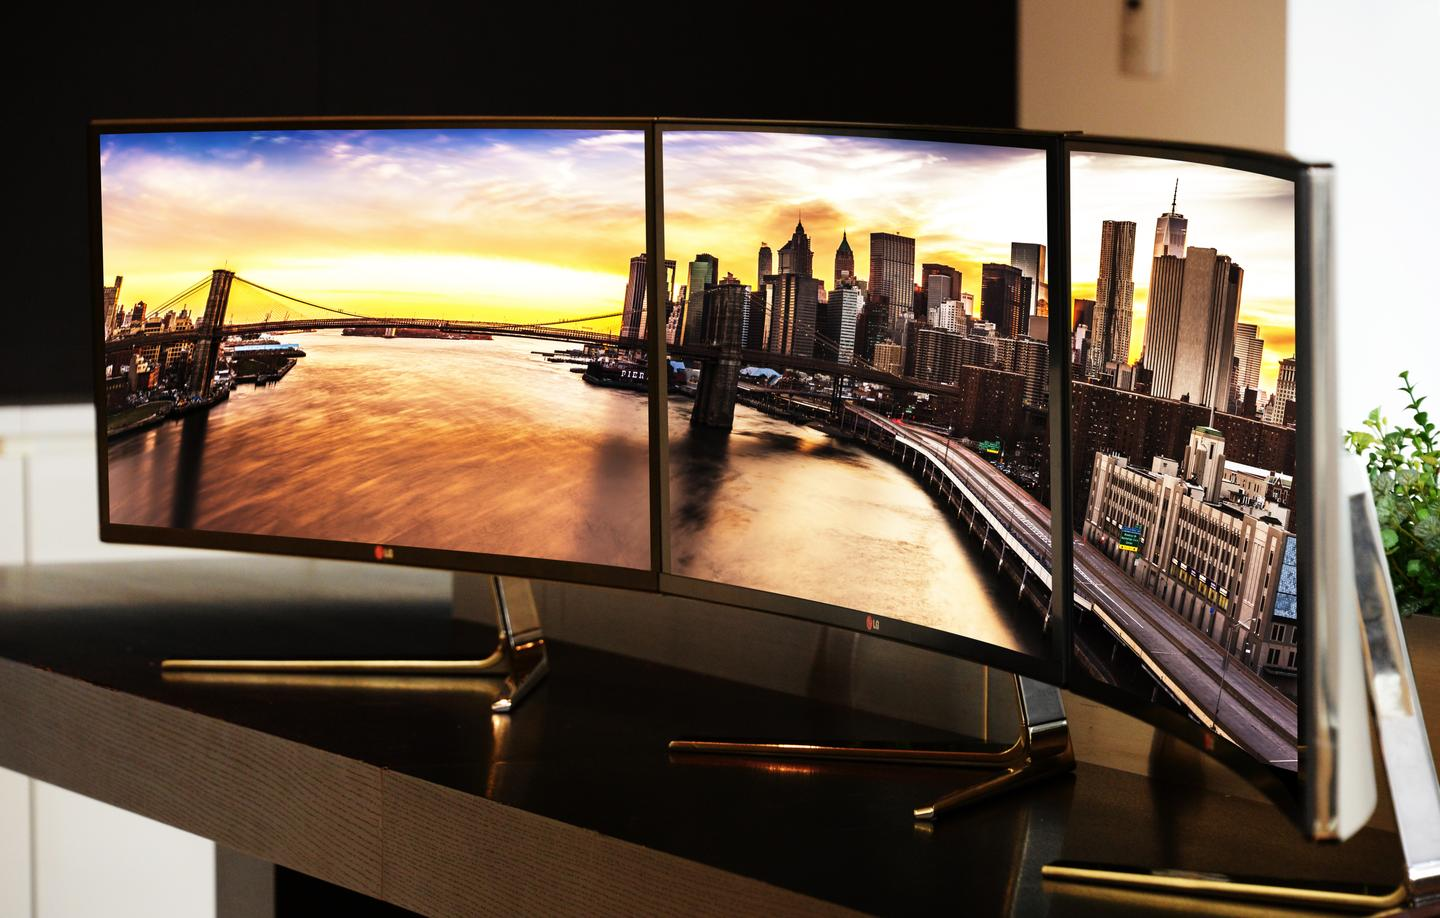 LG says that its flagship UltraWide monitor is equally suited to the needs of professional users and home entertainment enthusiasts